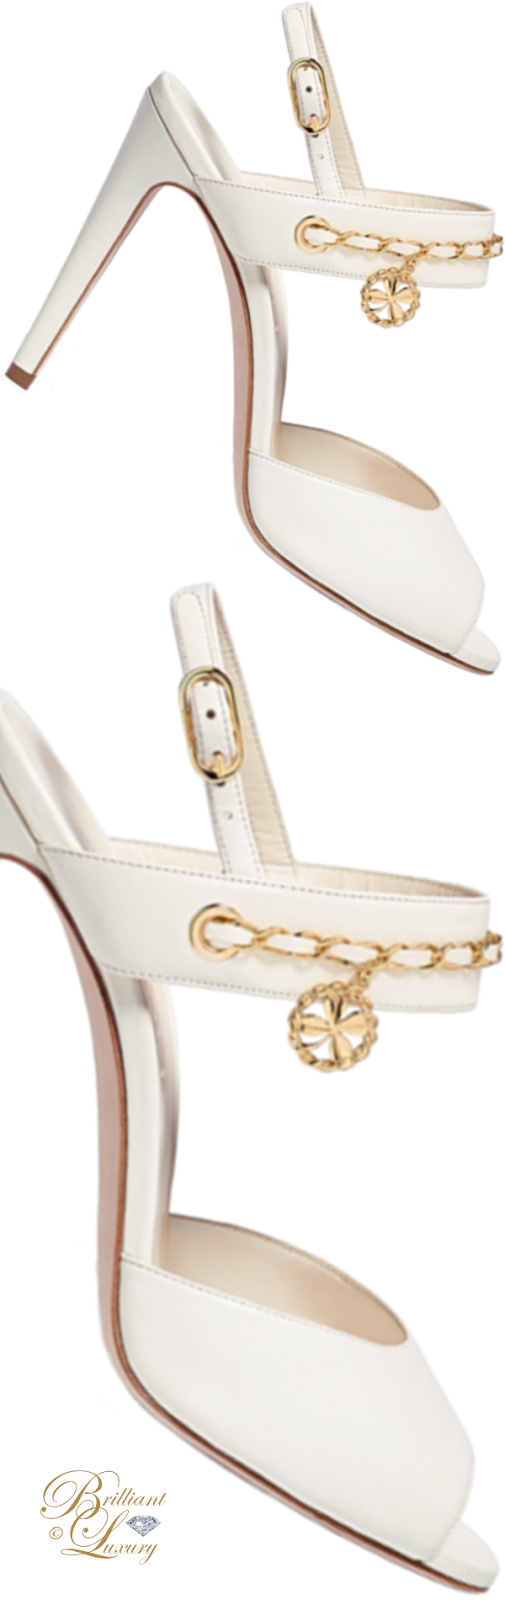 Brilliant Luxury ♦ Chanel ivory lambskin sandals